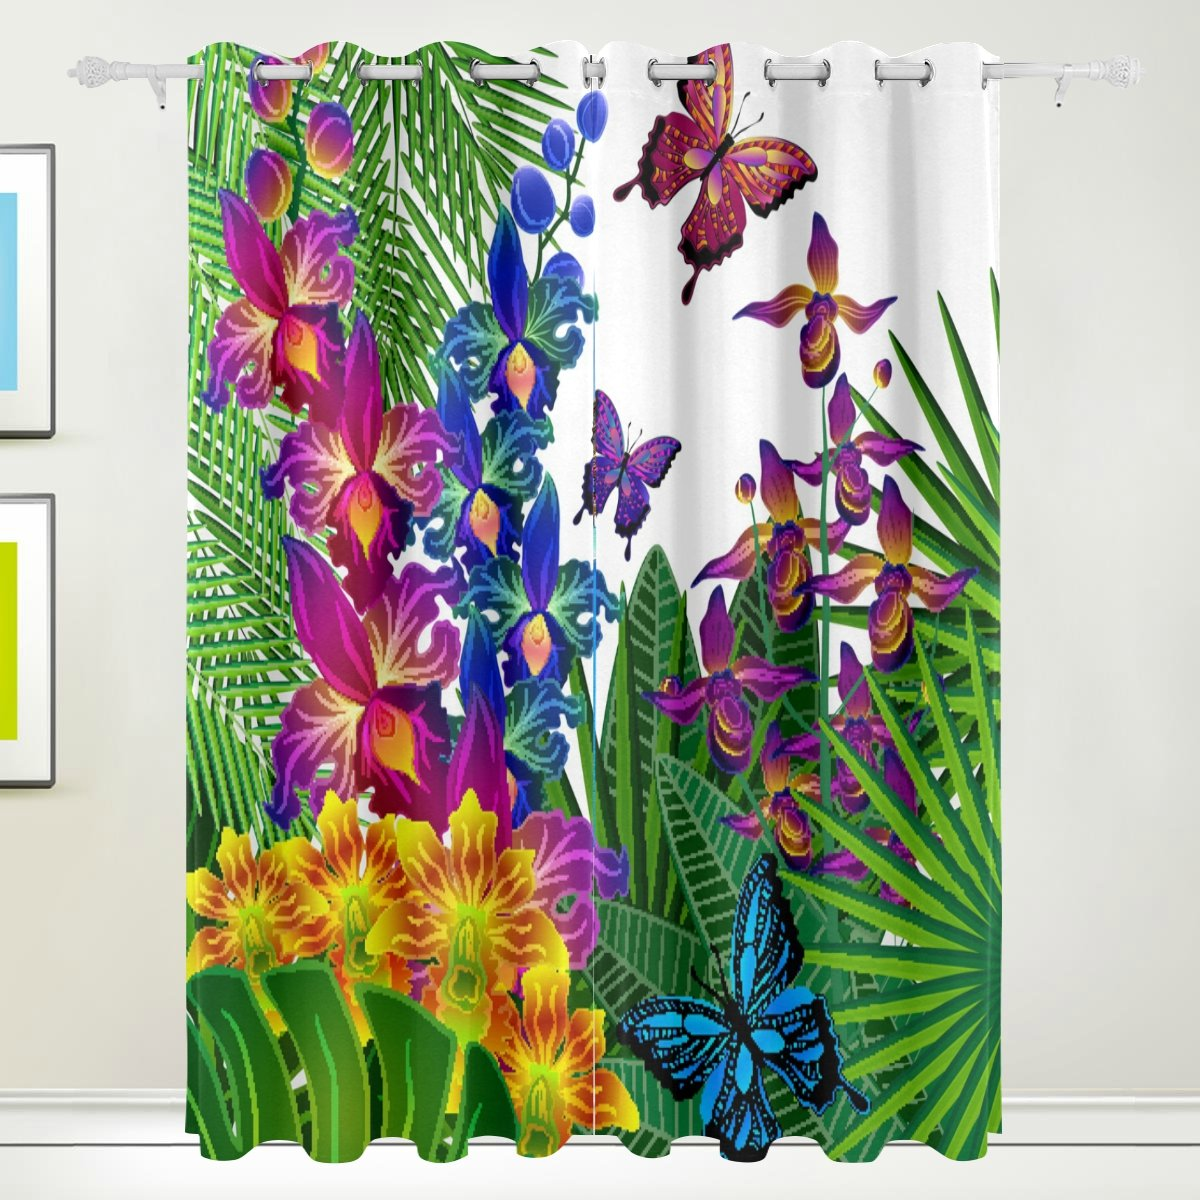 Window Curtain, Luxury Tropical Forest Trees Print Thermal Insulated Thick Super Soft Polyester Fabric Home Decor with Eyelet 2 Panels for Bedroom Living Room Bathroom Kitchen 84 x 55 inch FFY GO